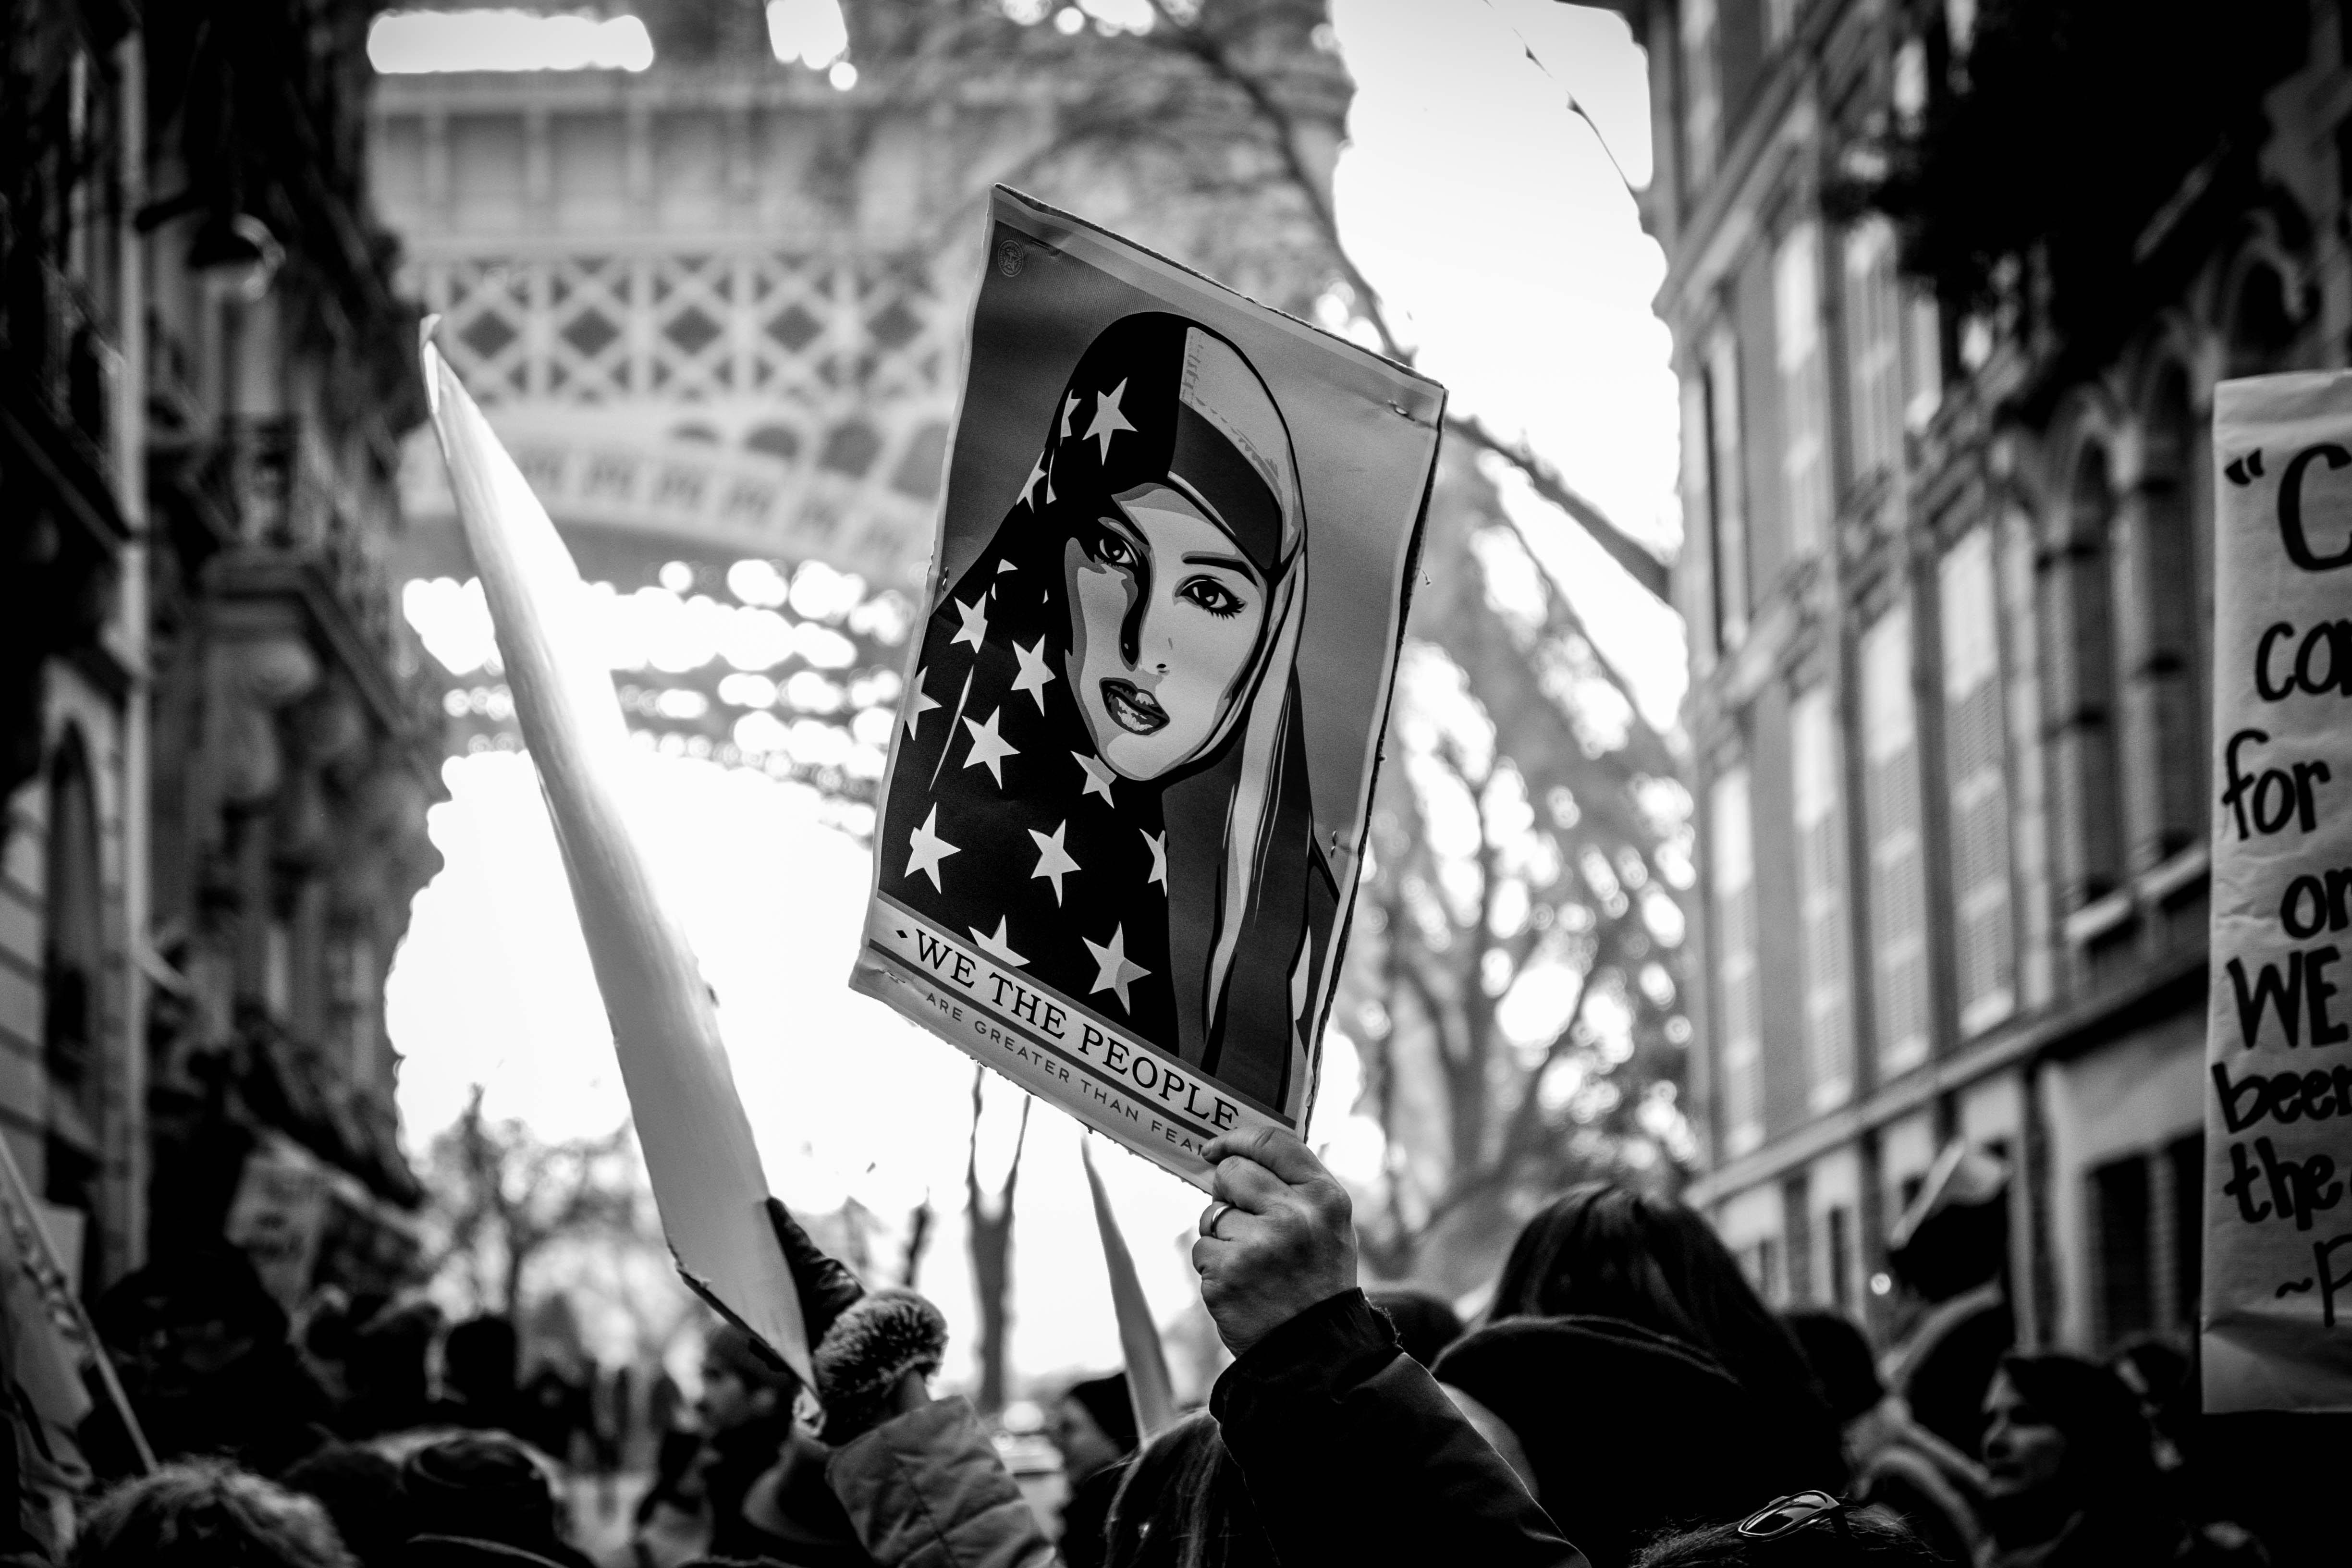 """A person holding up a """"We the people"""" sign at a protest near the Eiffel Tower"""